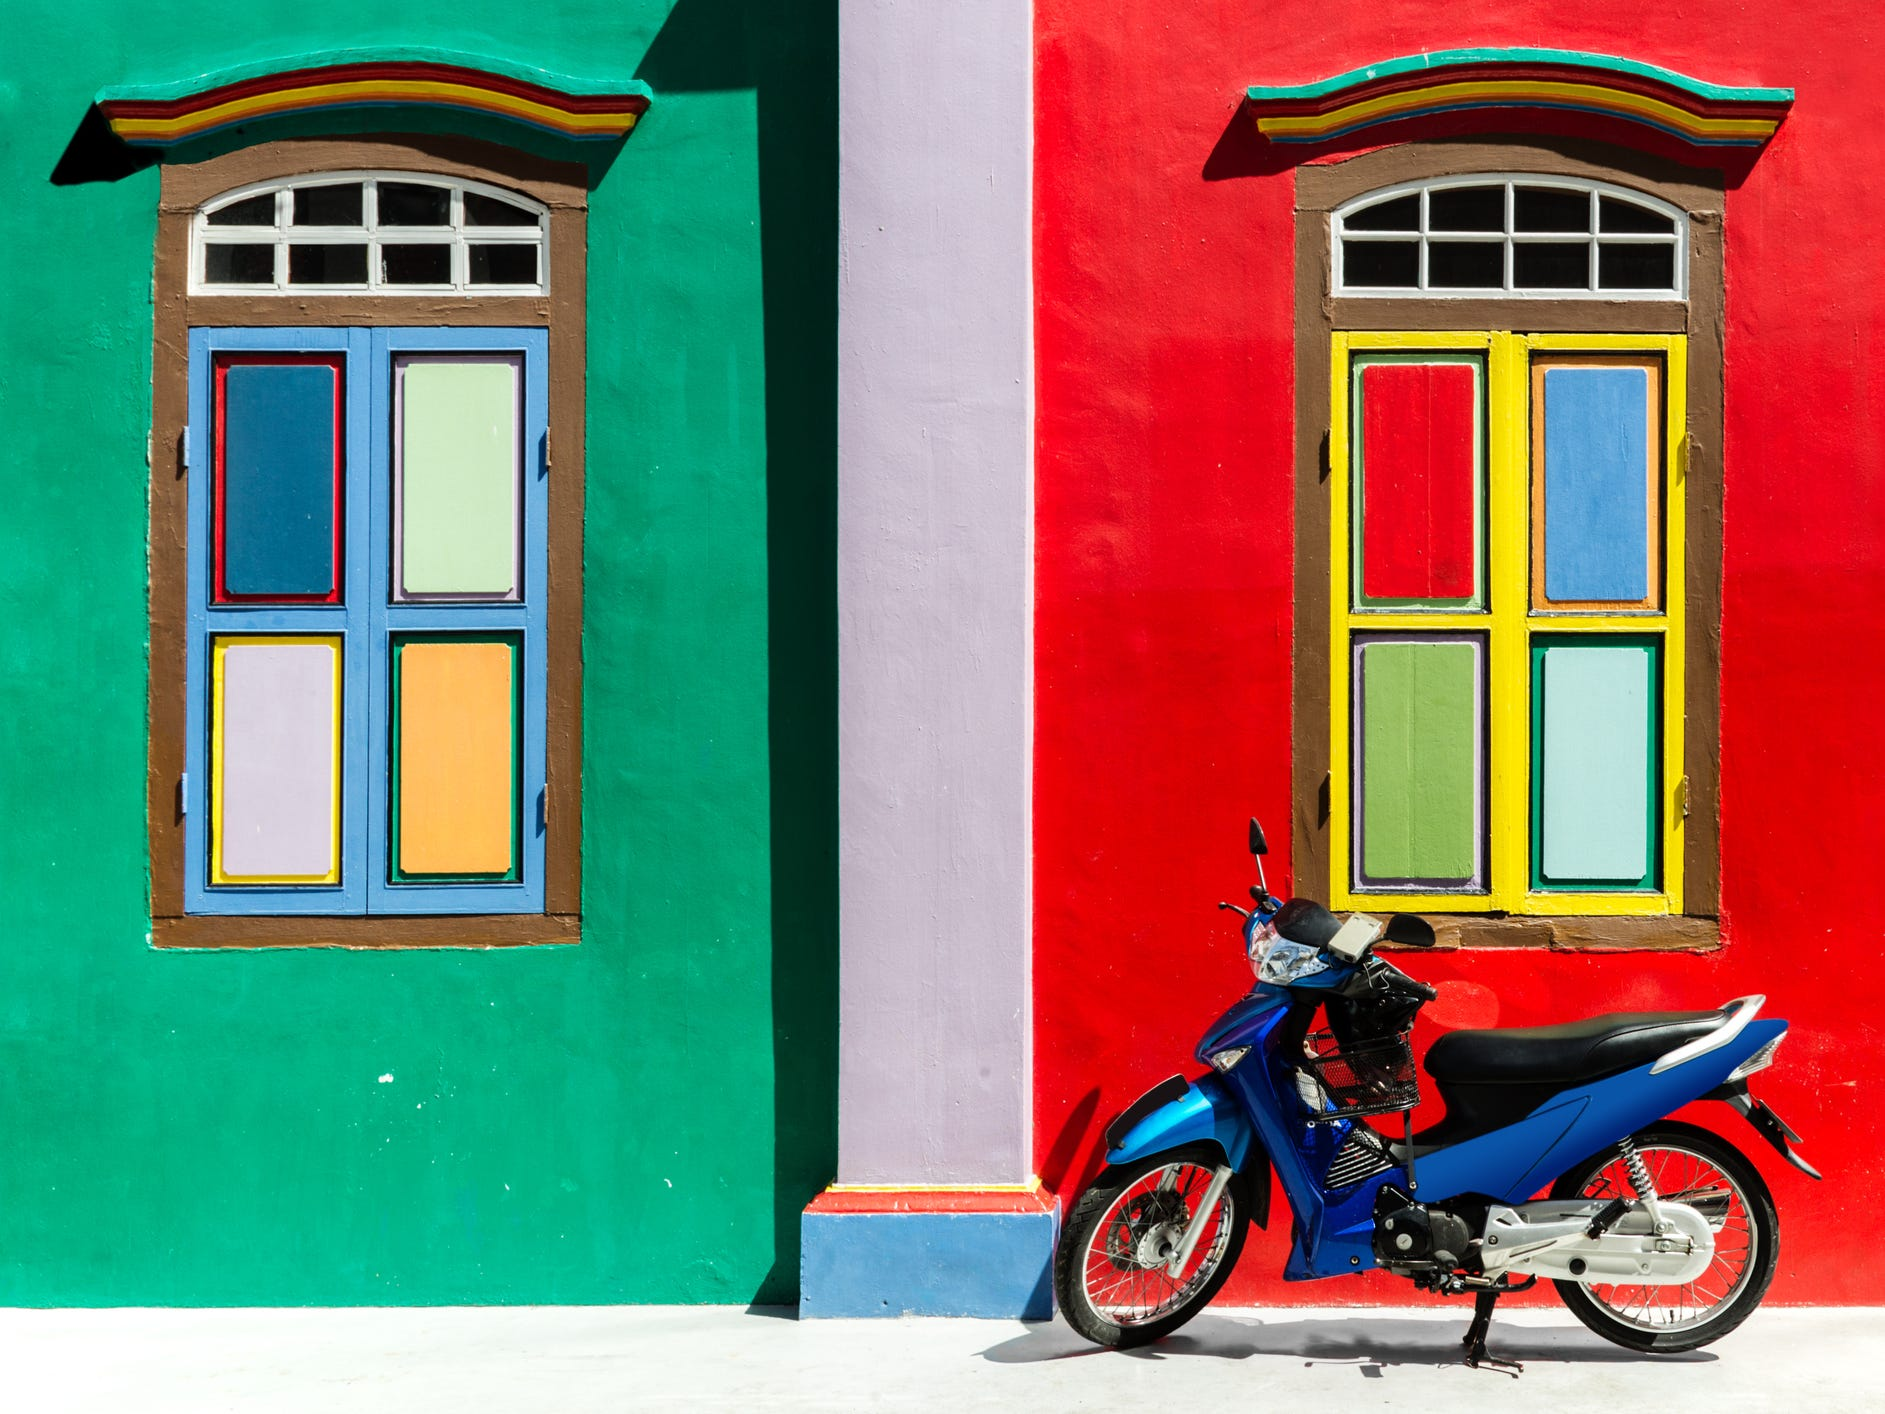 Singapore: Singapore makes this list for its bustling Little India district, where temples, markets, shopfronts and street art offer a melange of colors.